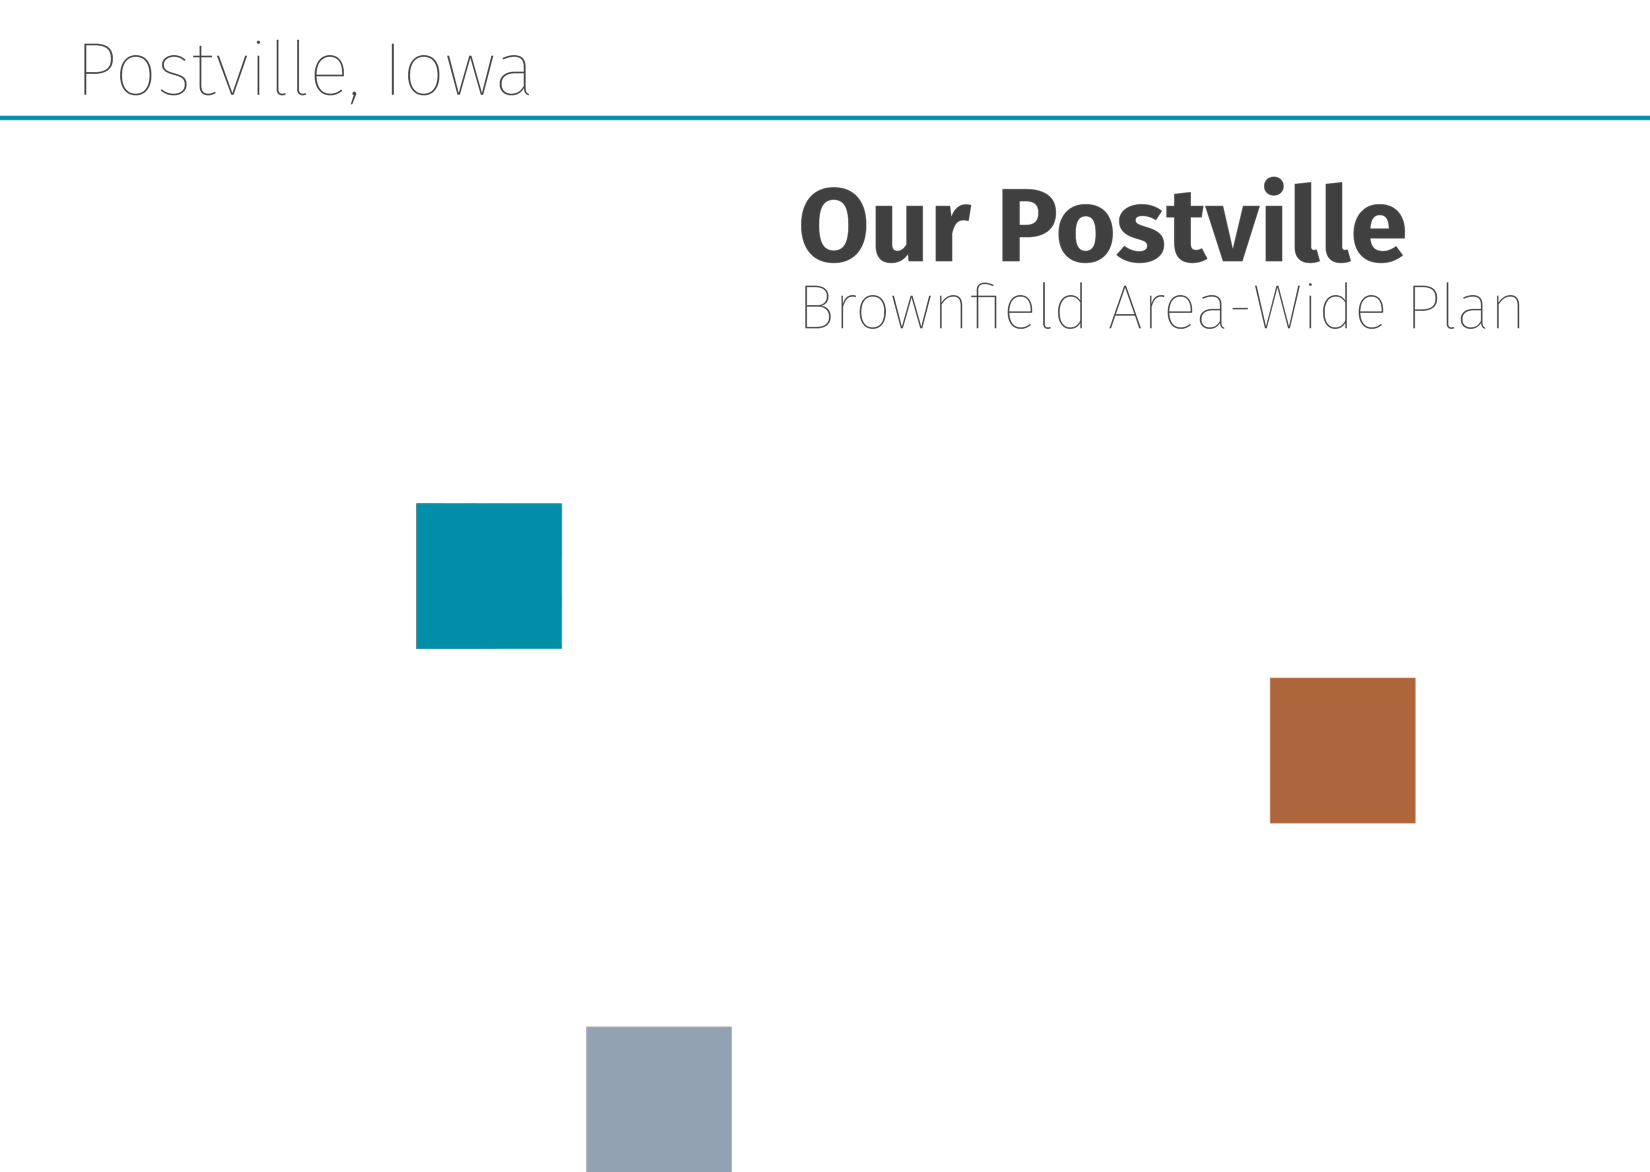 Our Postville: Brownfield Area-Wide Plan for Postville, Iowa